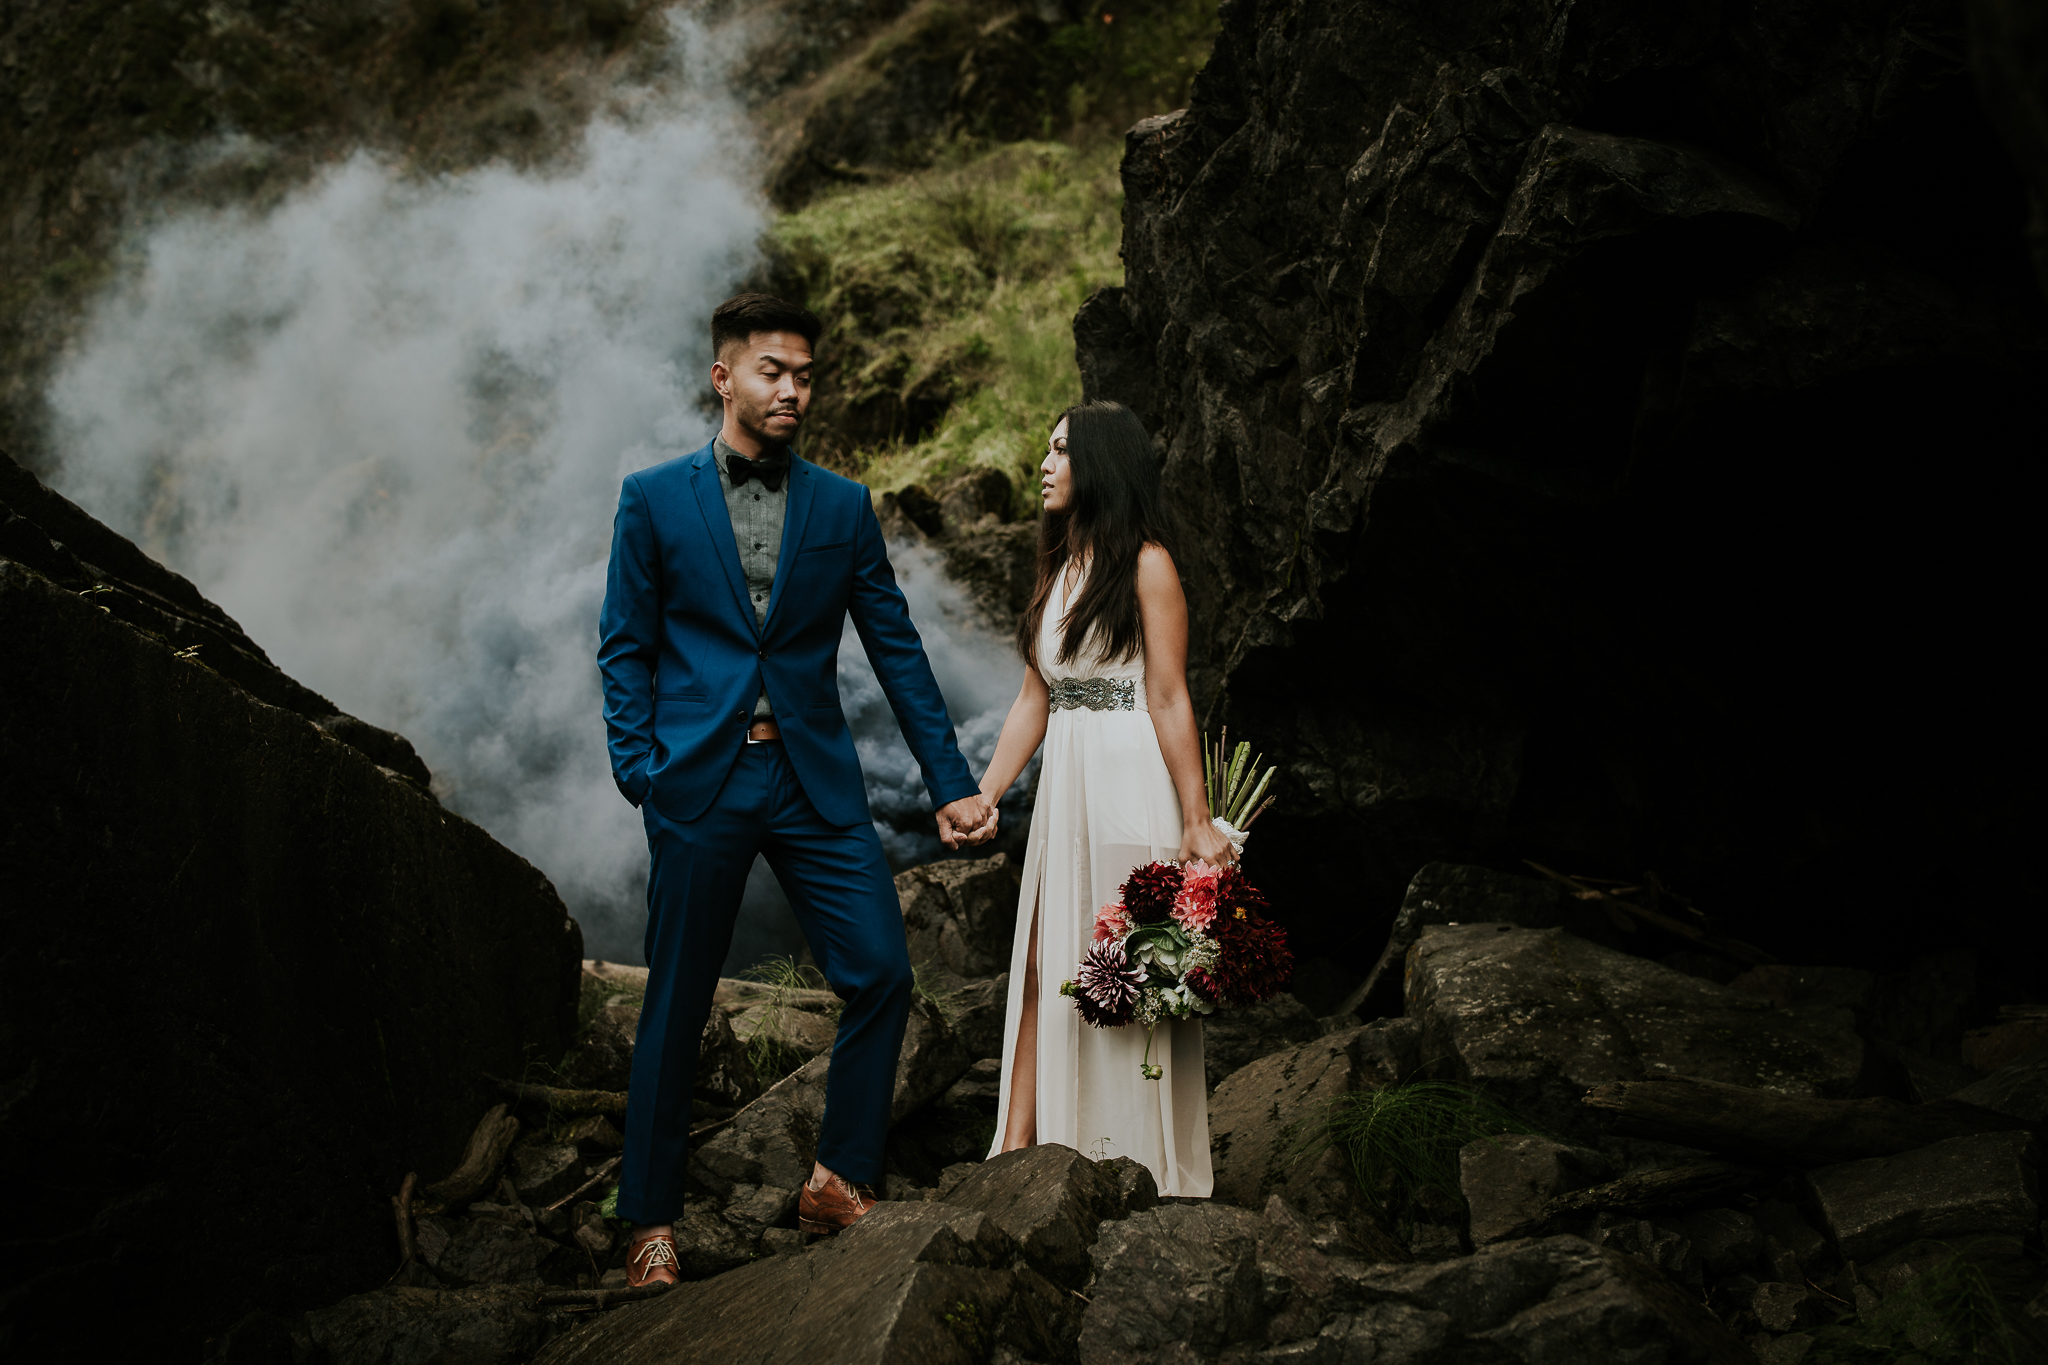 Bride and groom holding hands as smoke bomb goes off in background at waterfall elopement